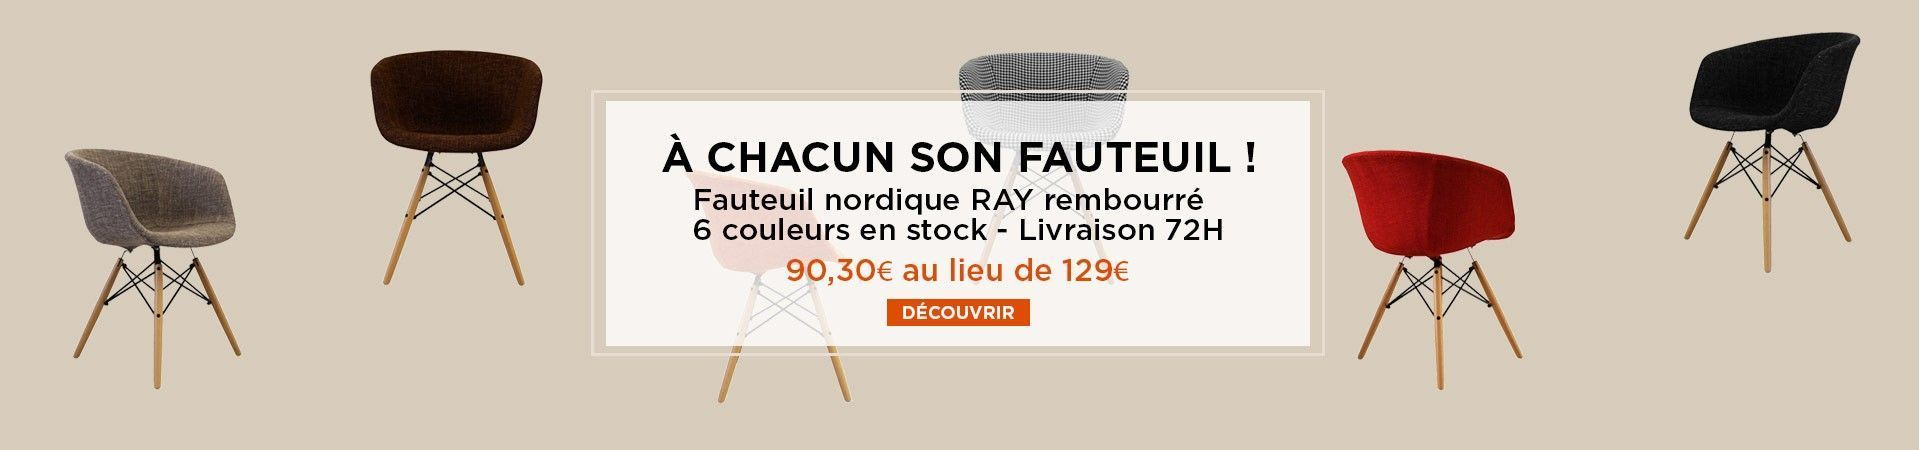 fauteuil ray promotion